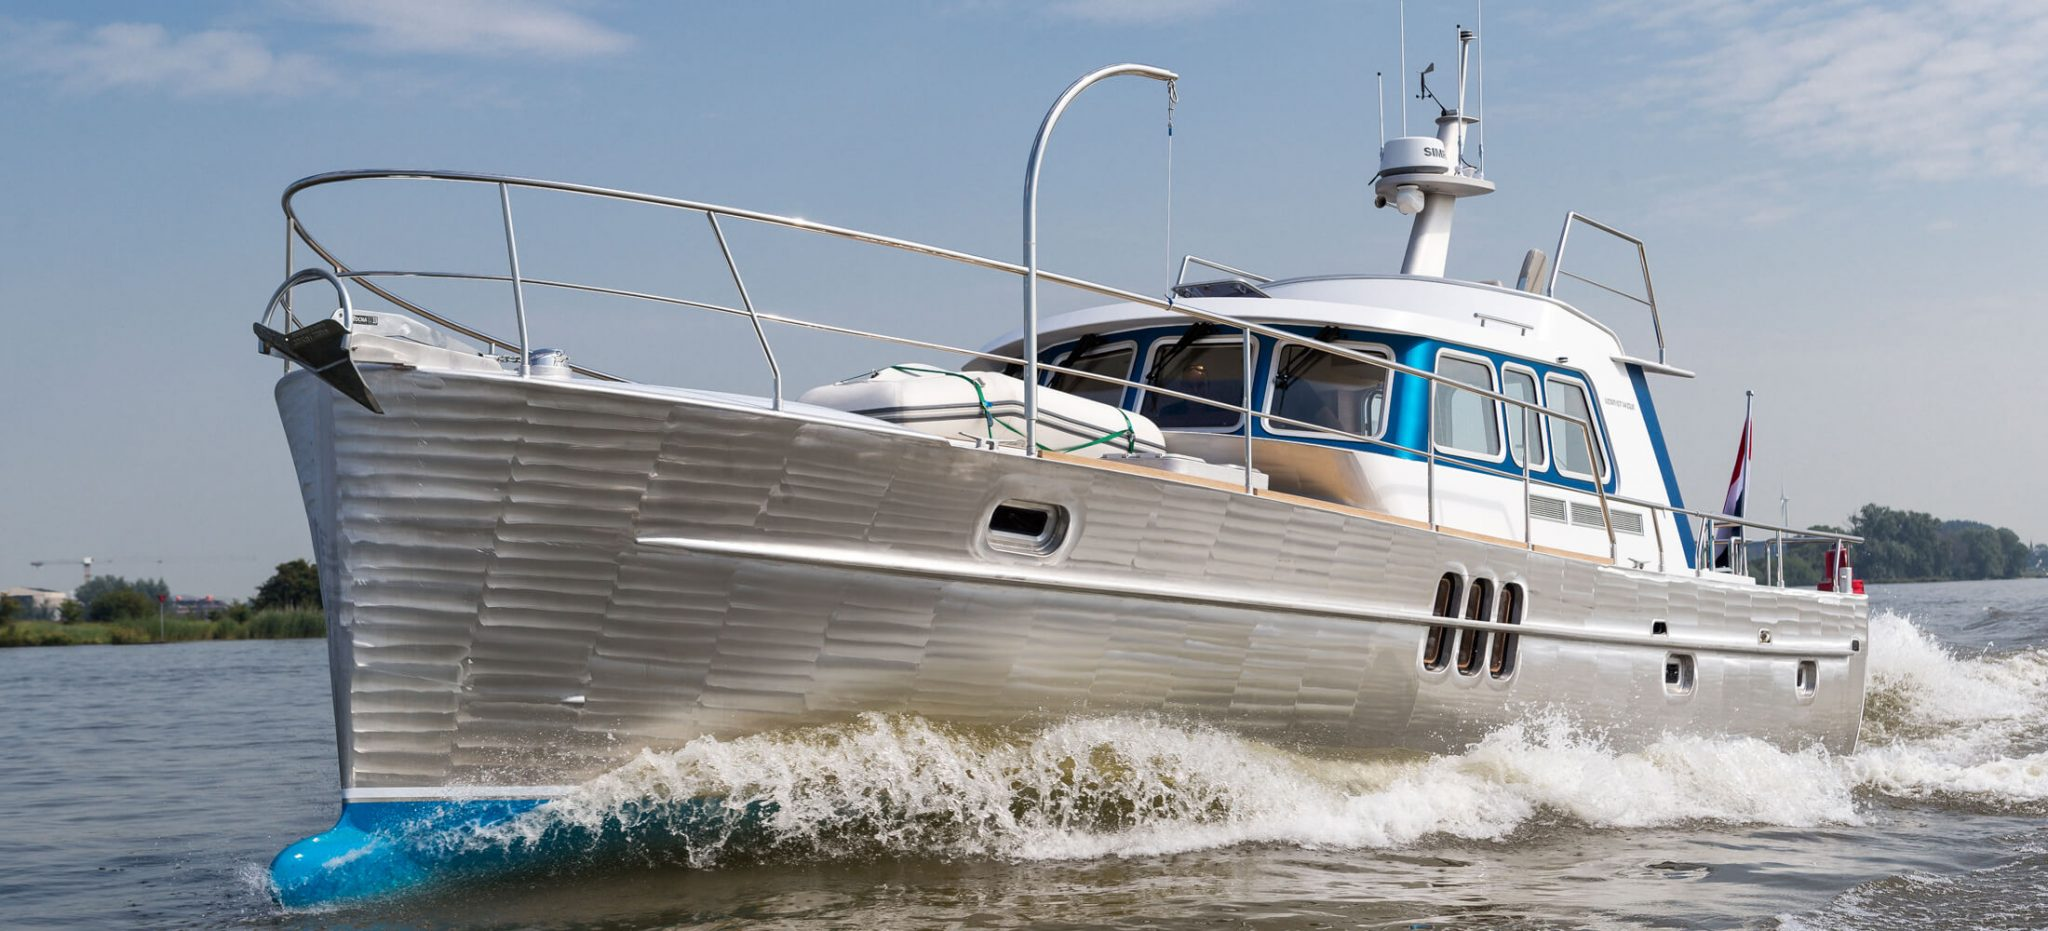 Luxury motor yachts for sale | Deep Water Yachts Holland | Korvet 14